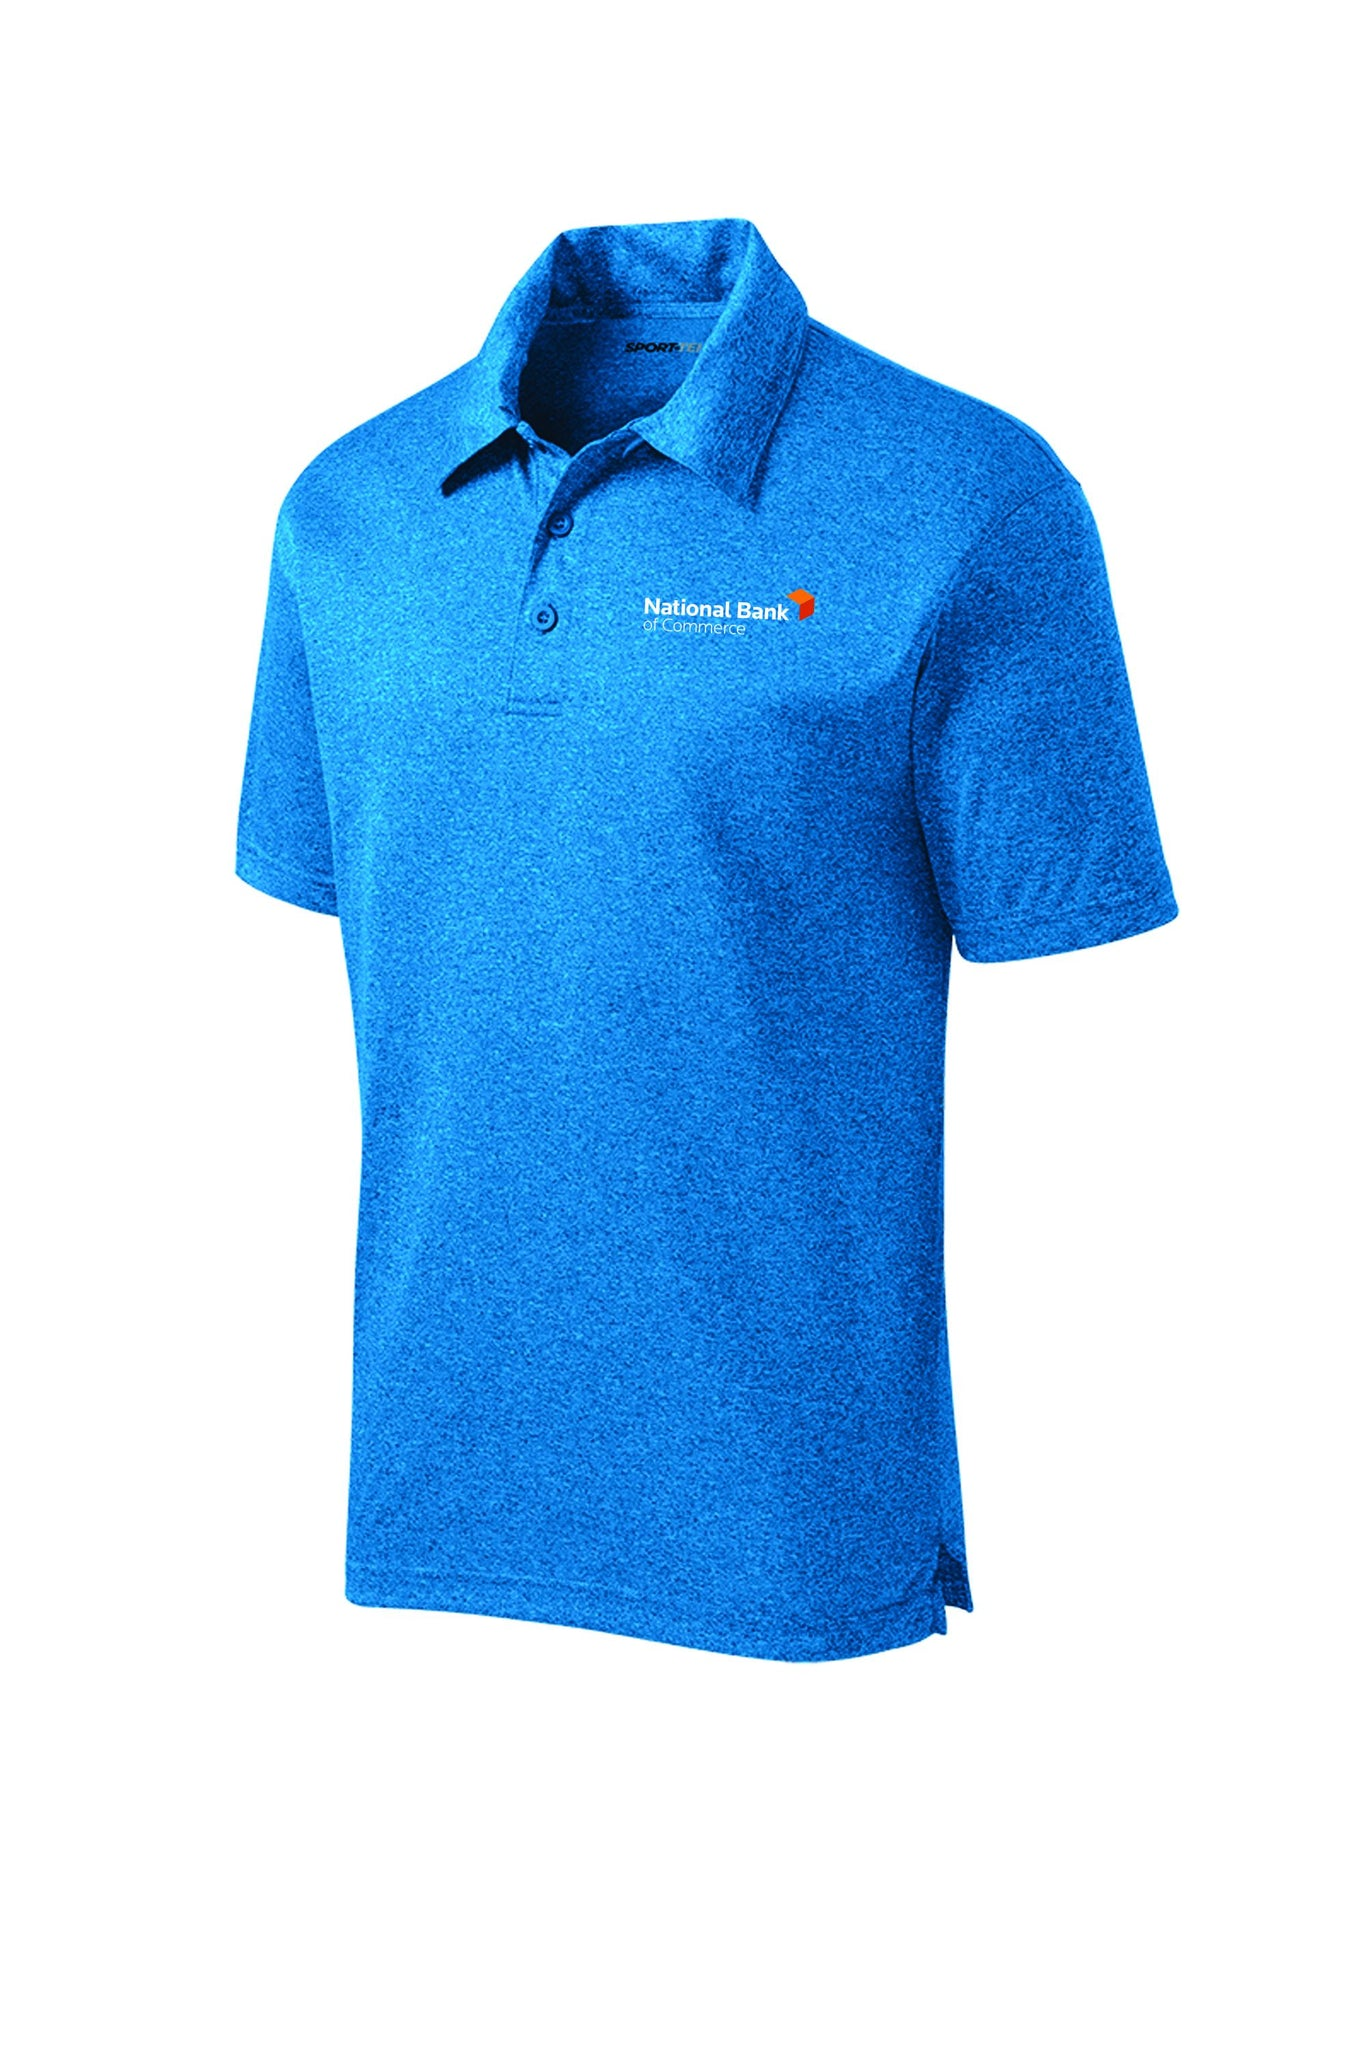 NBC POLO ST660 Sport-Tek® Heather Contender™ with embroidered logo